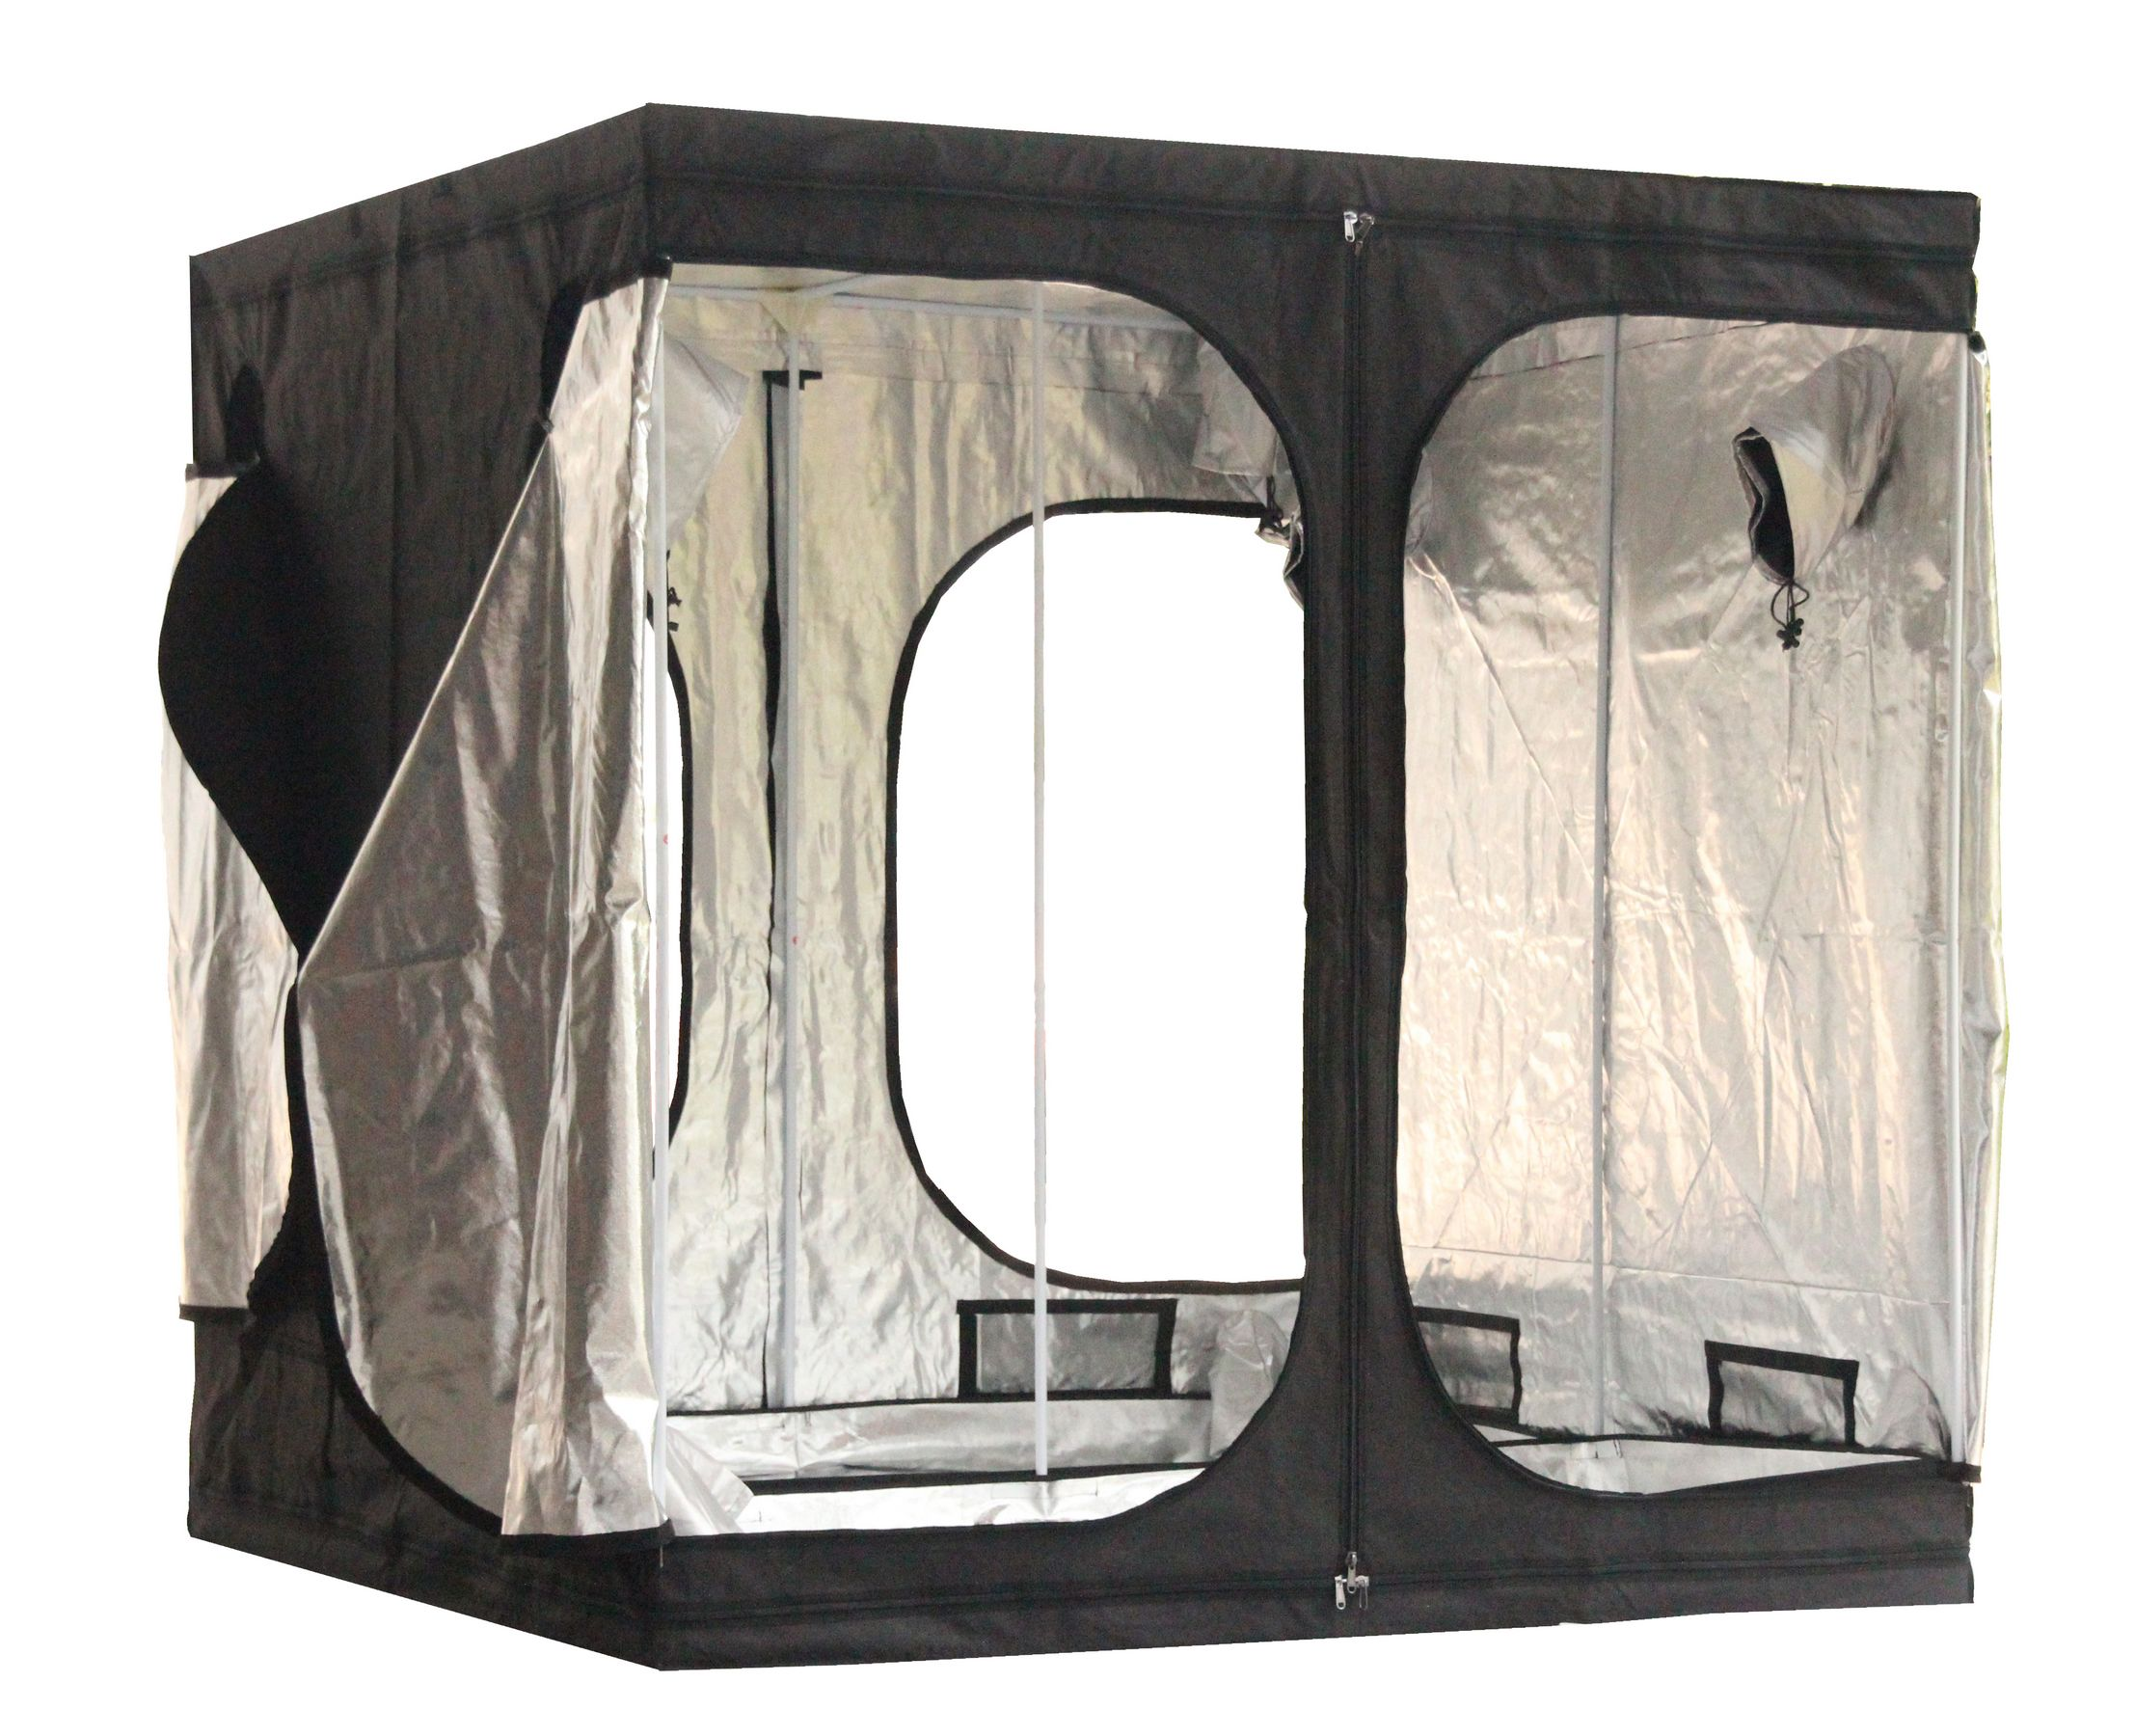 Sentinel New Design 2 X 2 X 2m Portable Grow Tent Silver Mylar Hydroponic Dark Green Room  sc 1 st  eBay : extra large grow tents - memphite.com